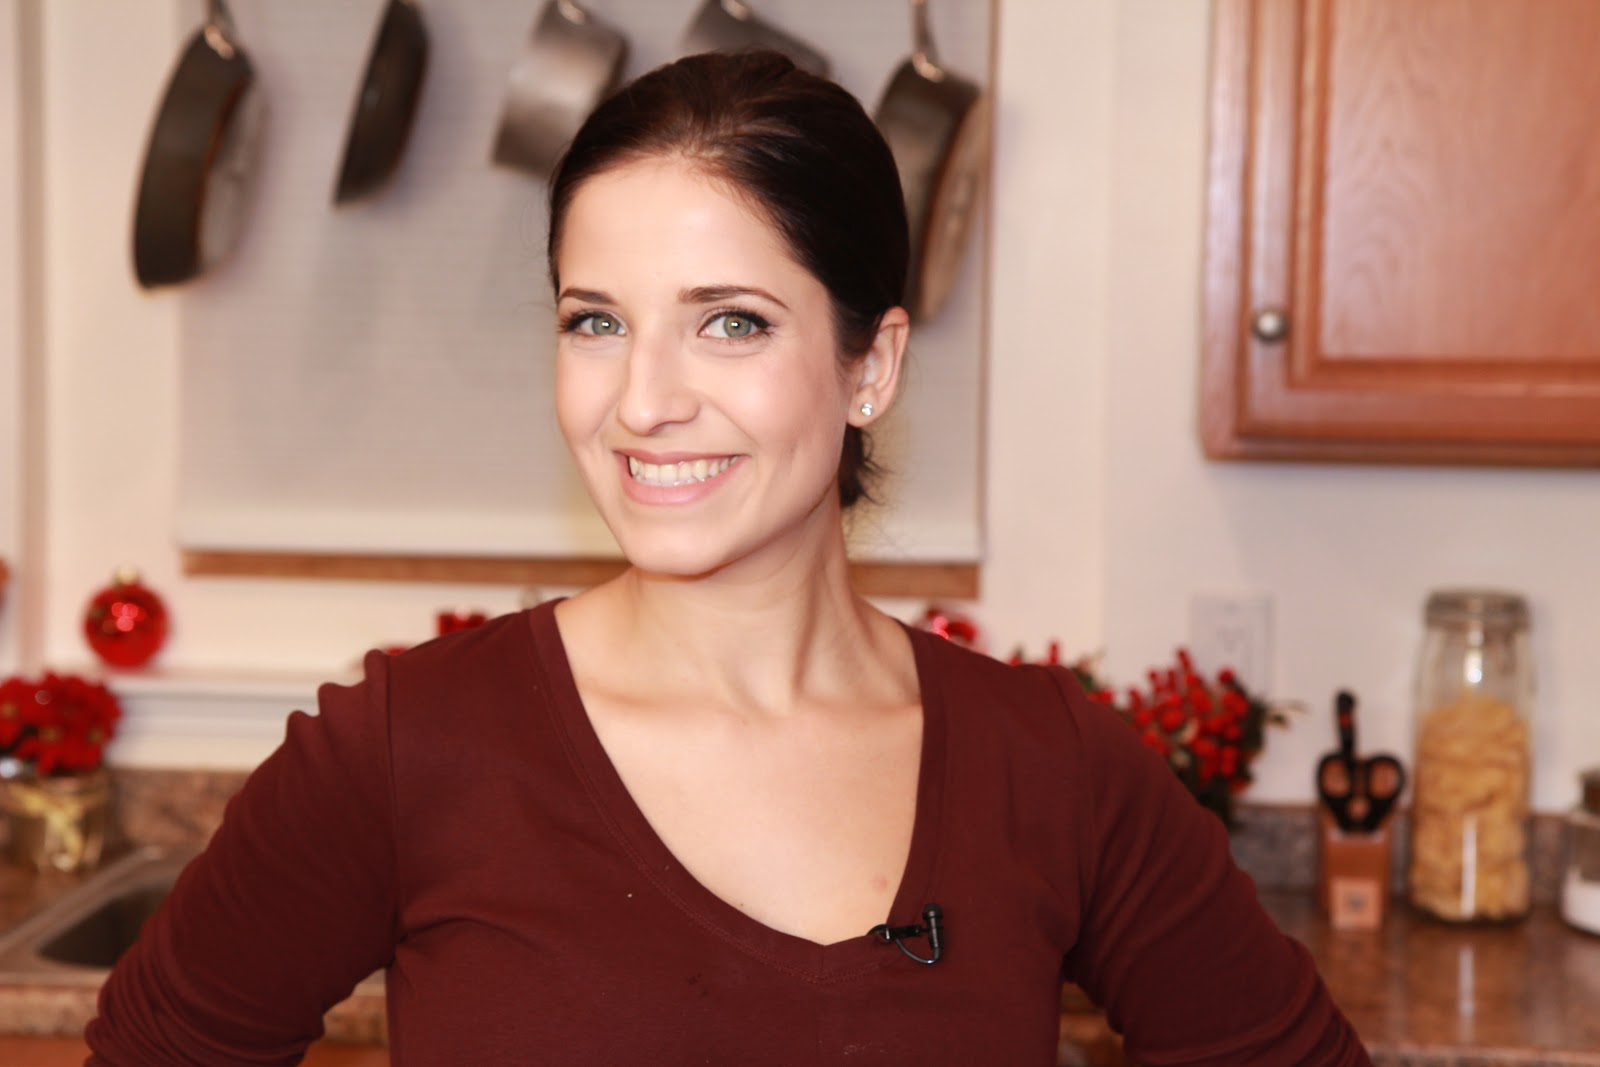 Laura Vitale S Blog My Most Worn Makeup For Laura In The Kitchen